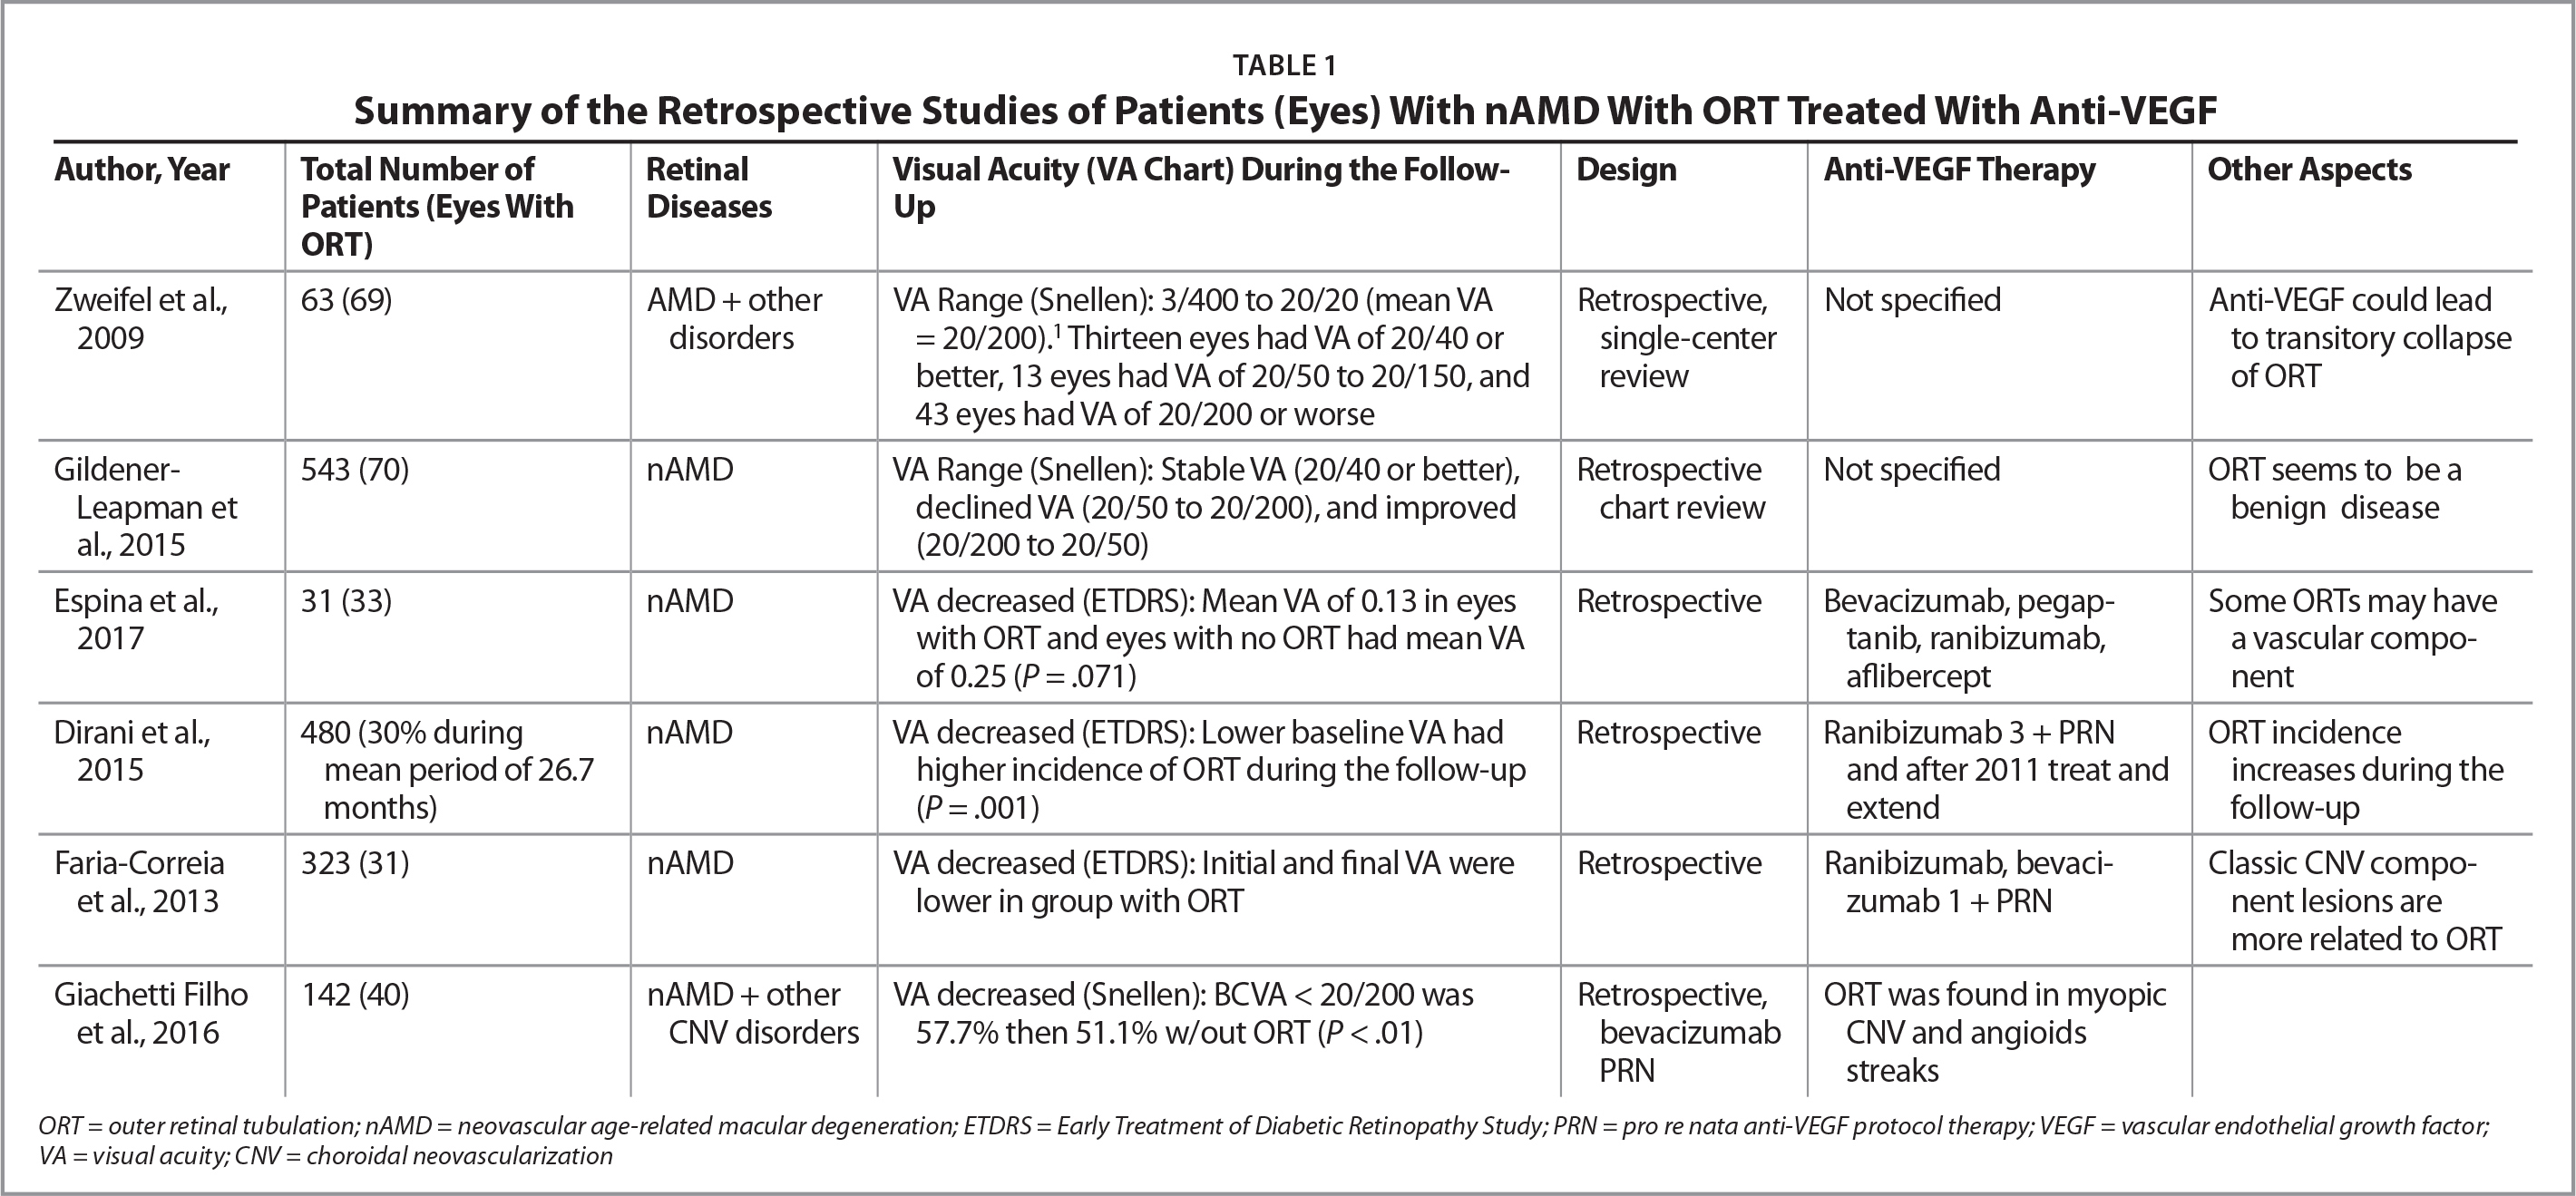 Summary of the Retrospective Studies of Patients (Eyes) With nAMD With ORT Treated With Anti-VEGF